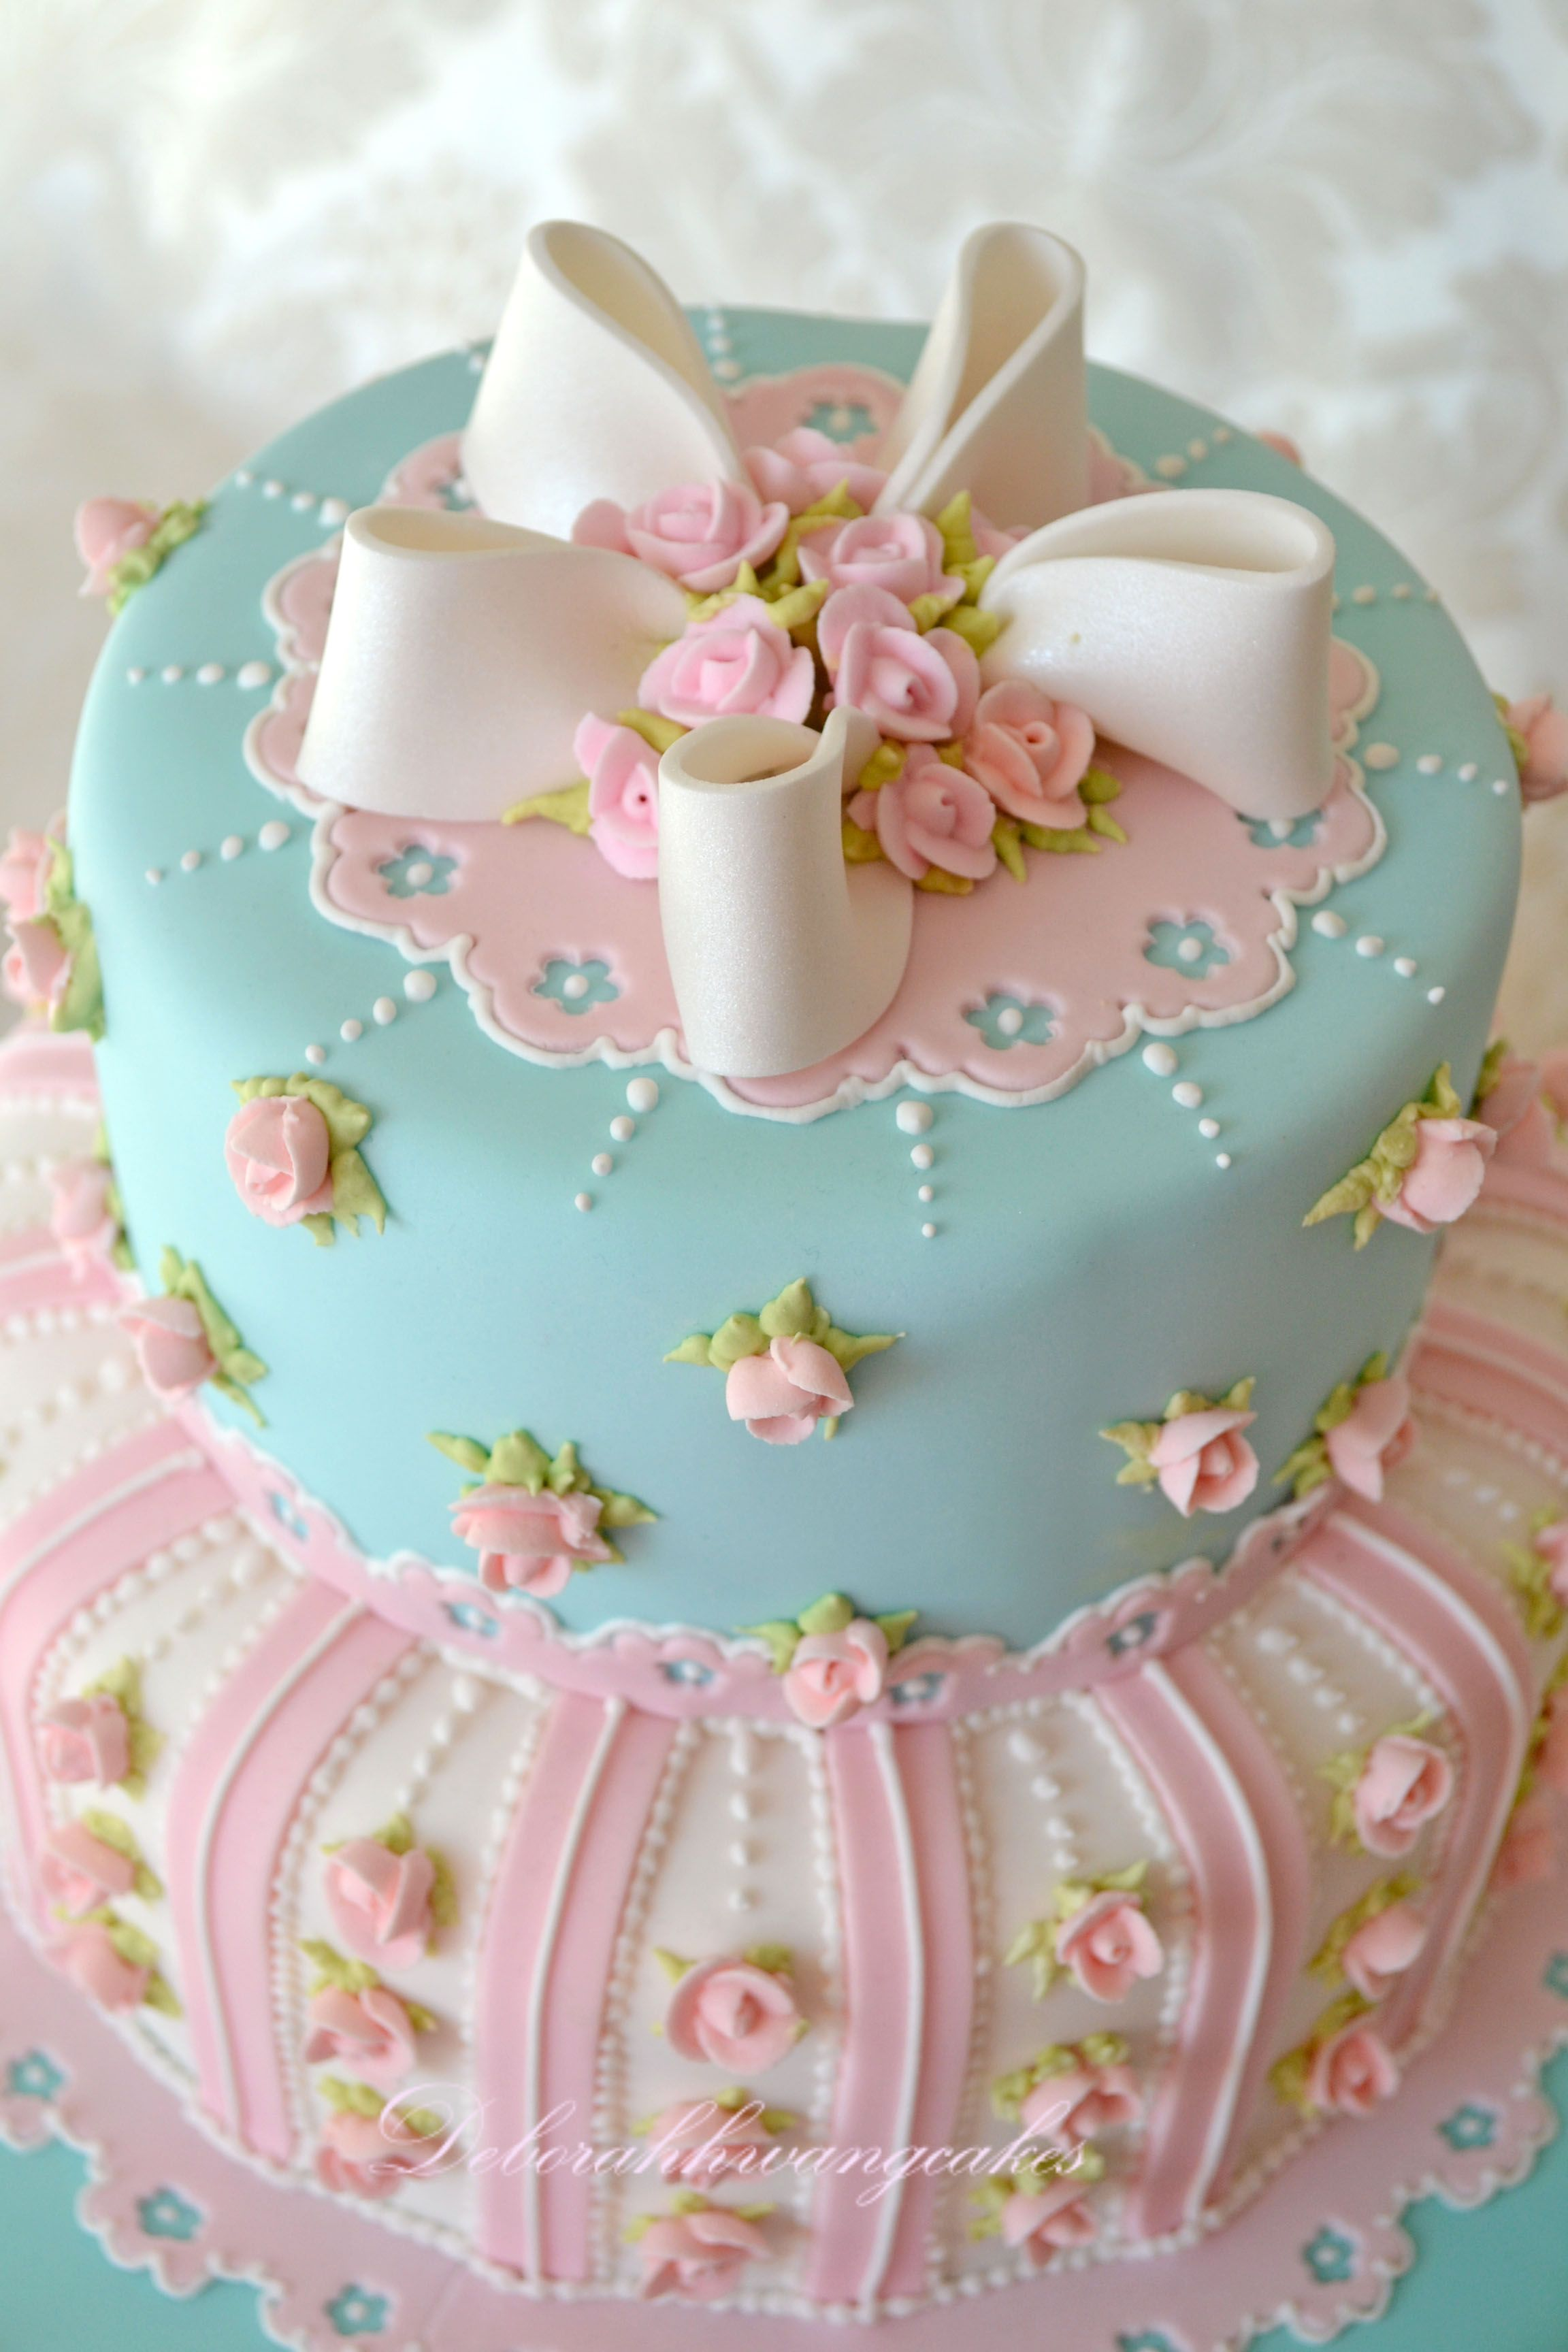 THIS cake for a girls birthday or Tea party. Or if it's a